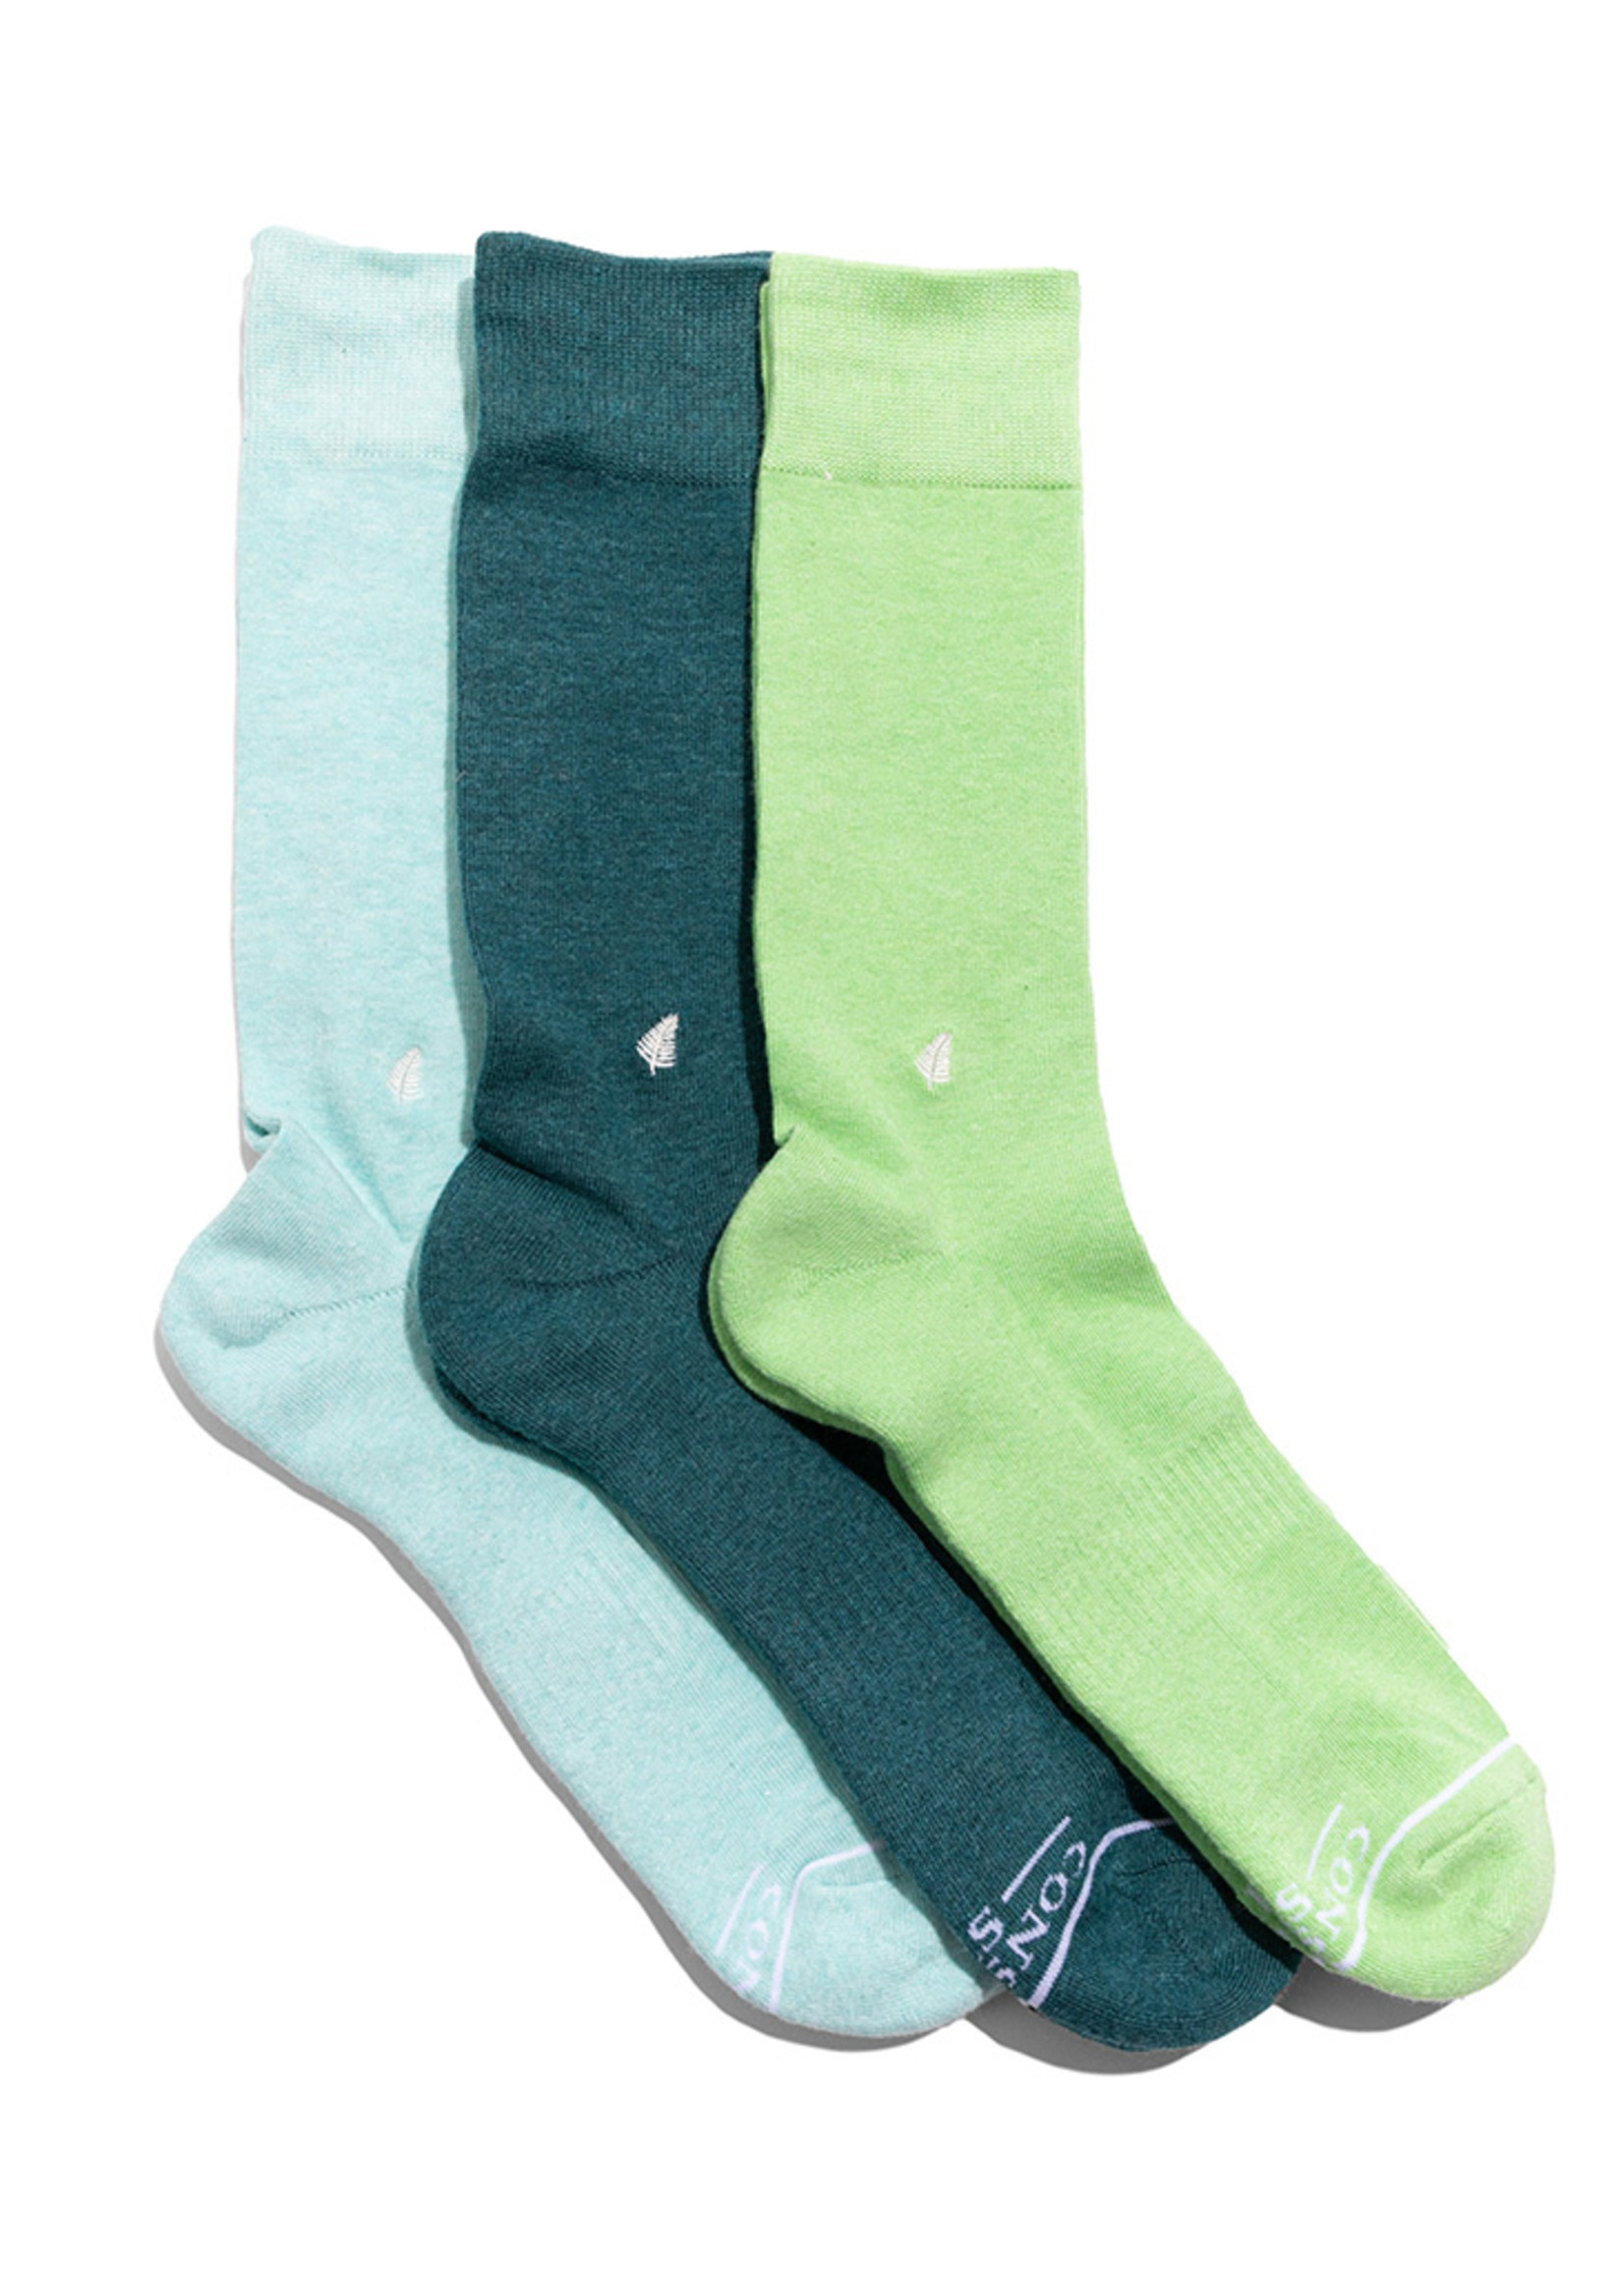 Conscious Step Women's Box of Socks That Protect Rainforests